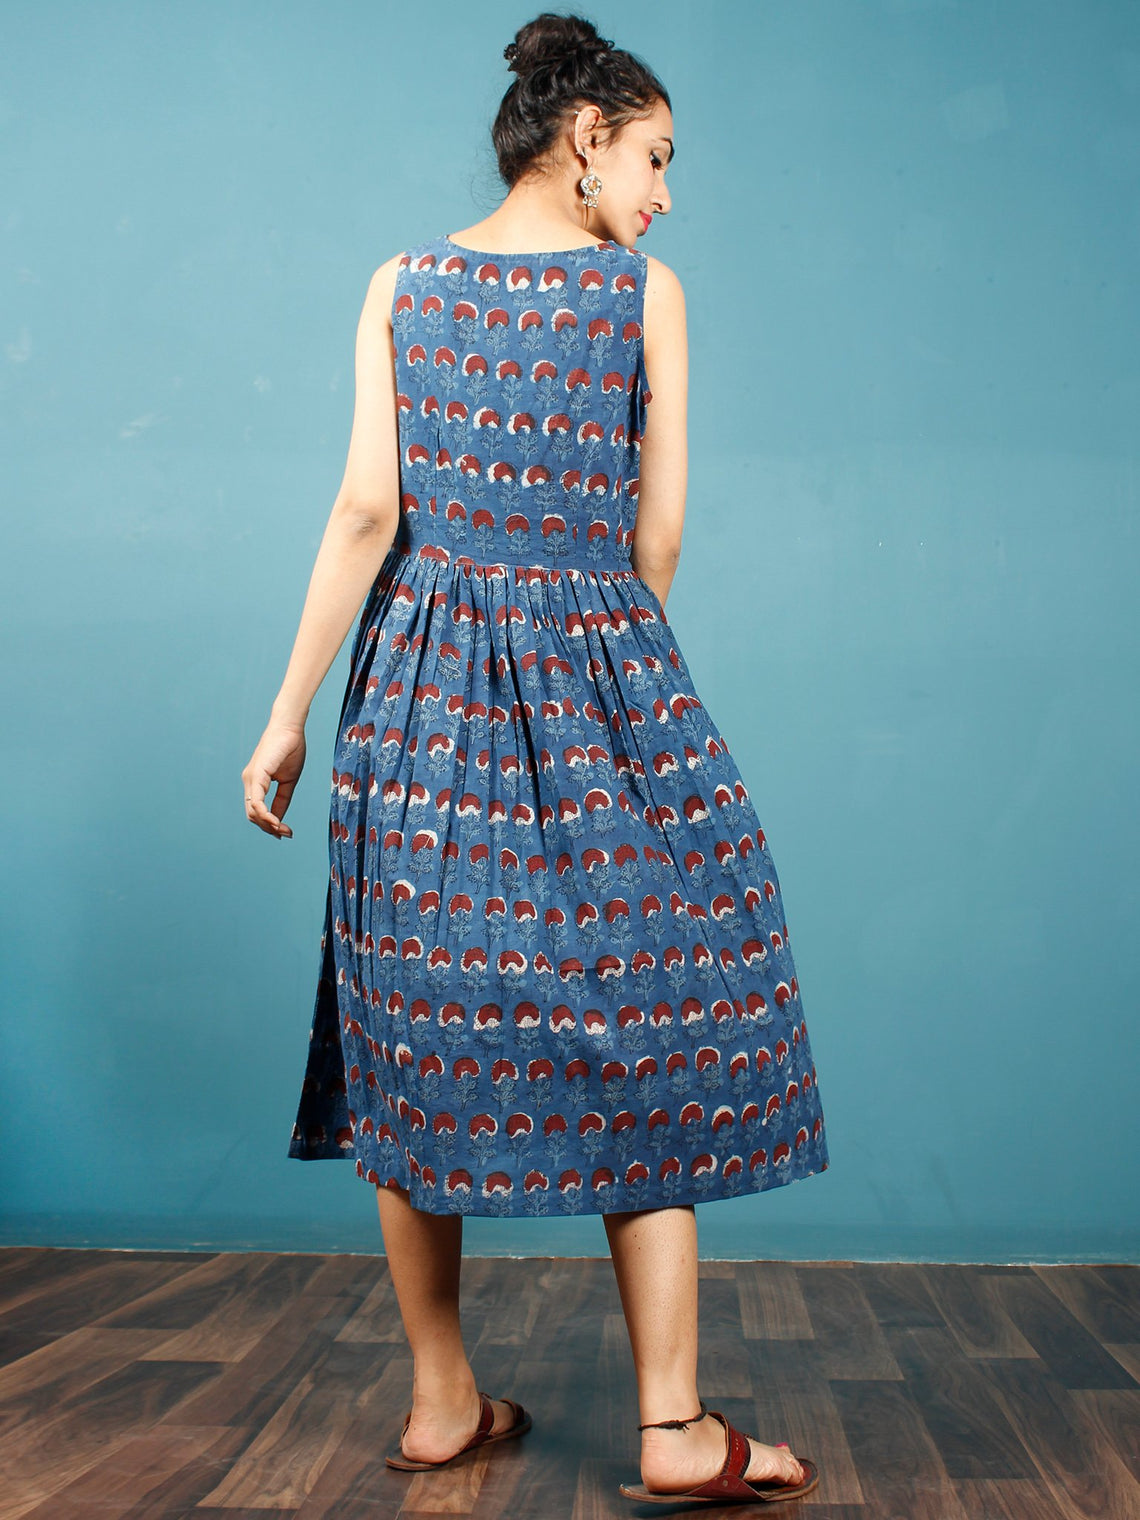 Indigo Brown Ivory Black Hand Block Printed Cotton Midi Sleeveless Dress - D244F1336